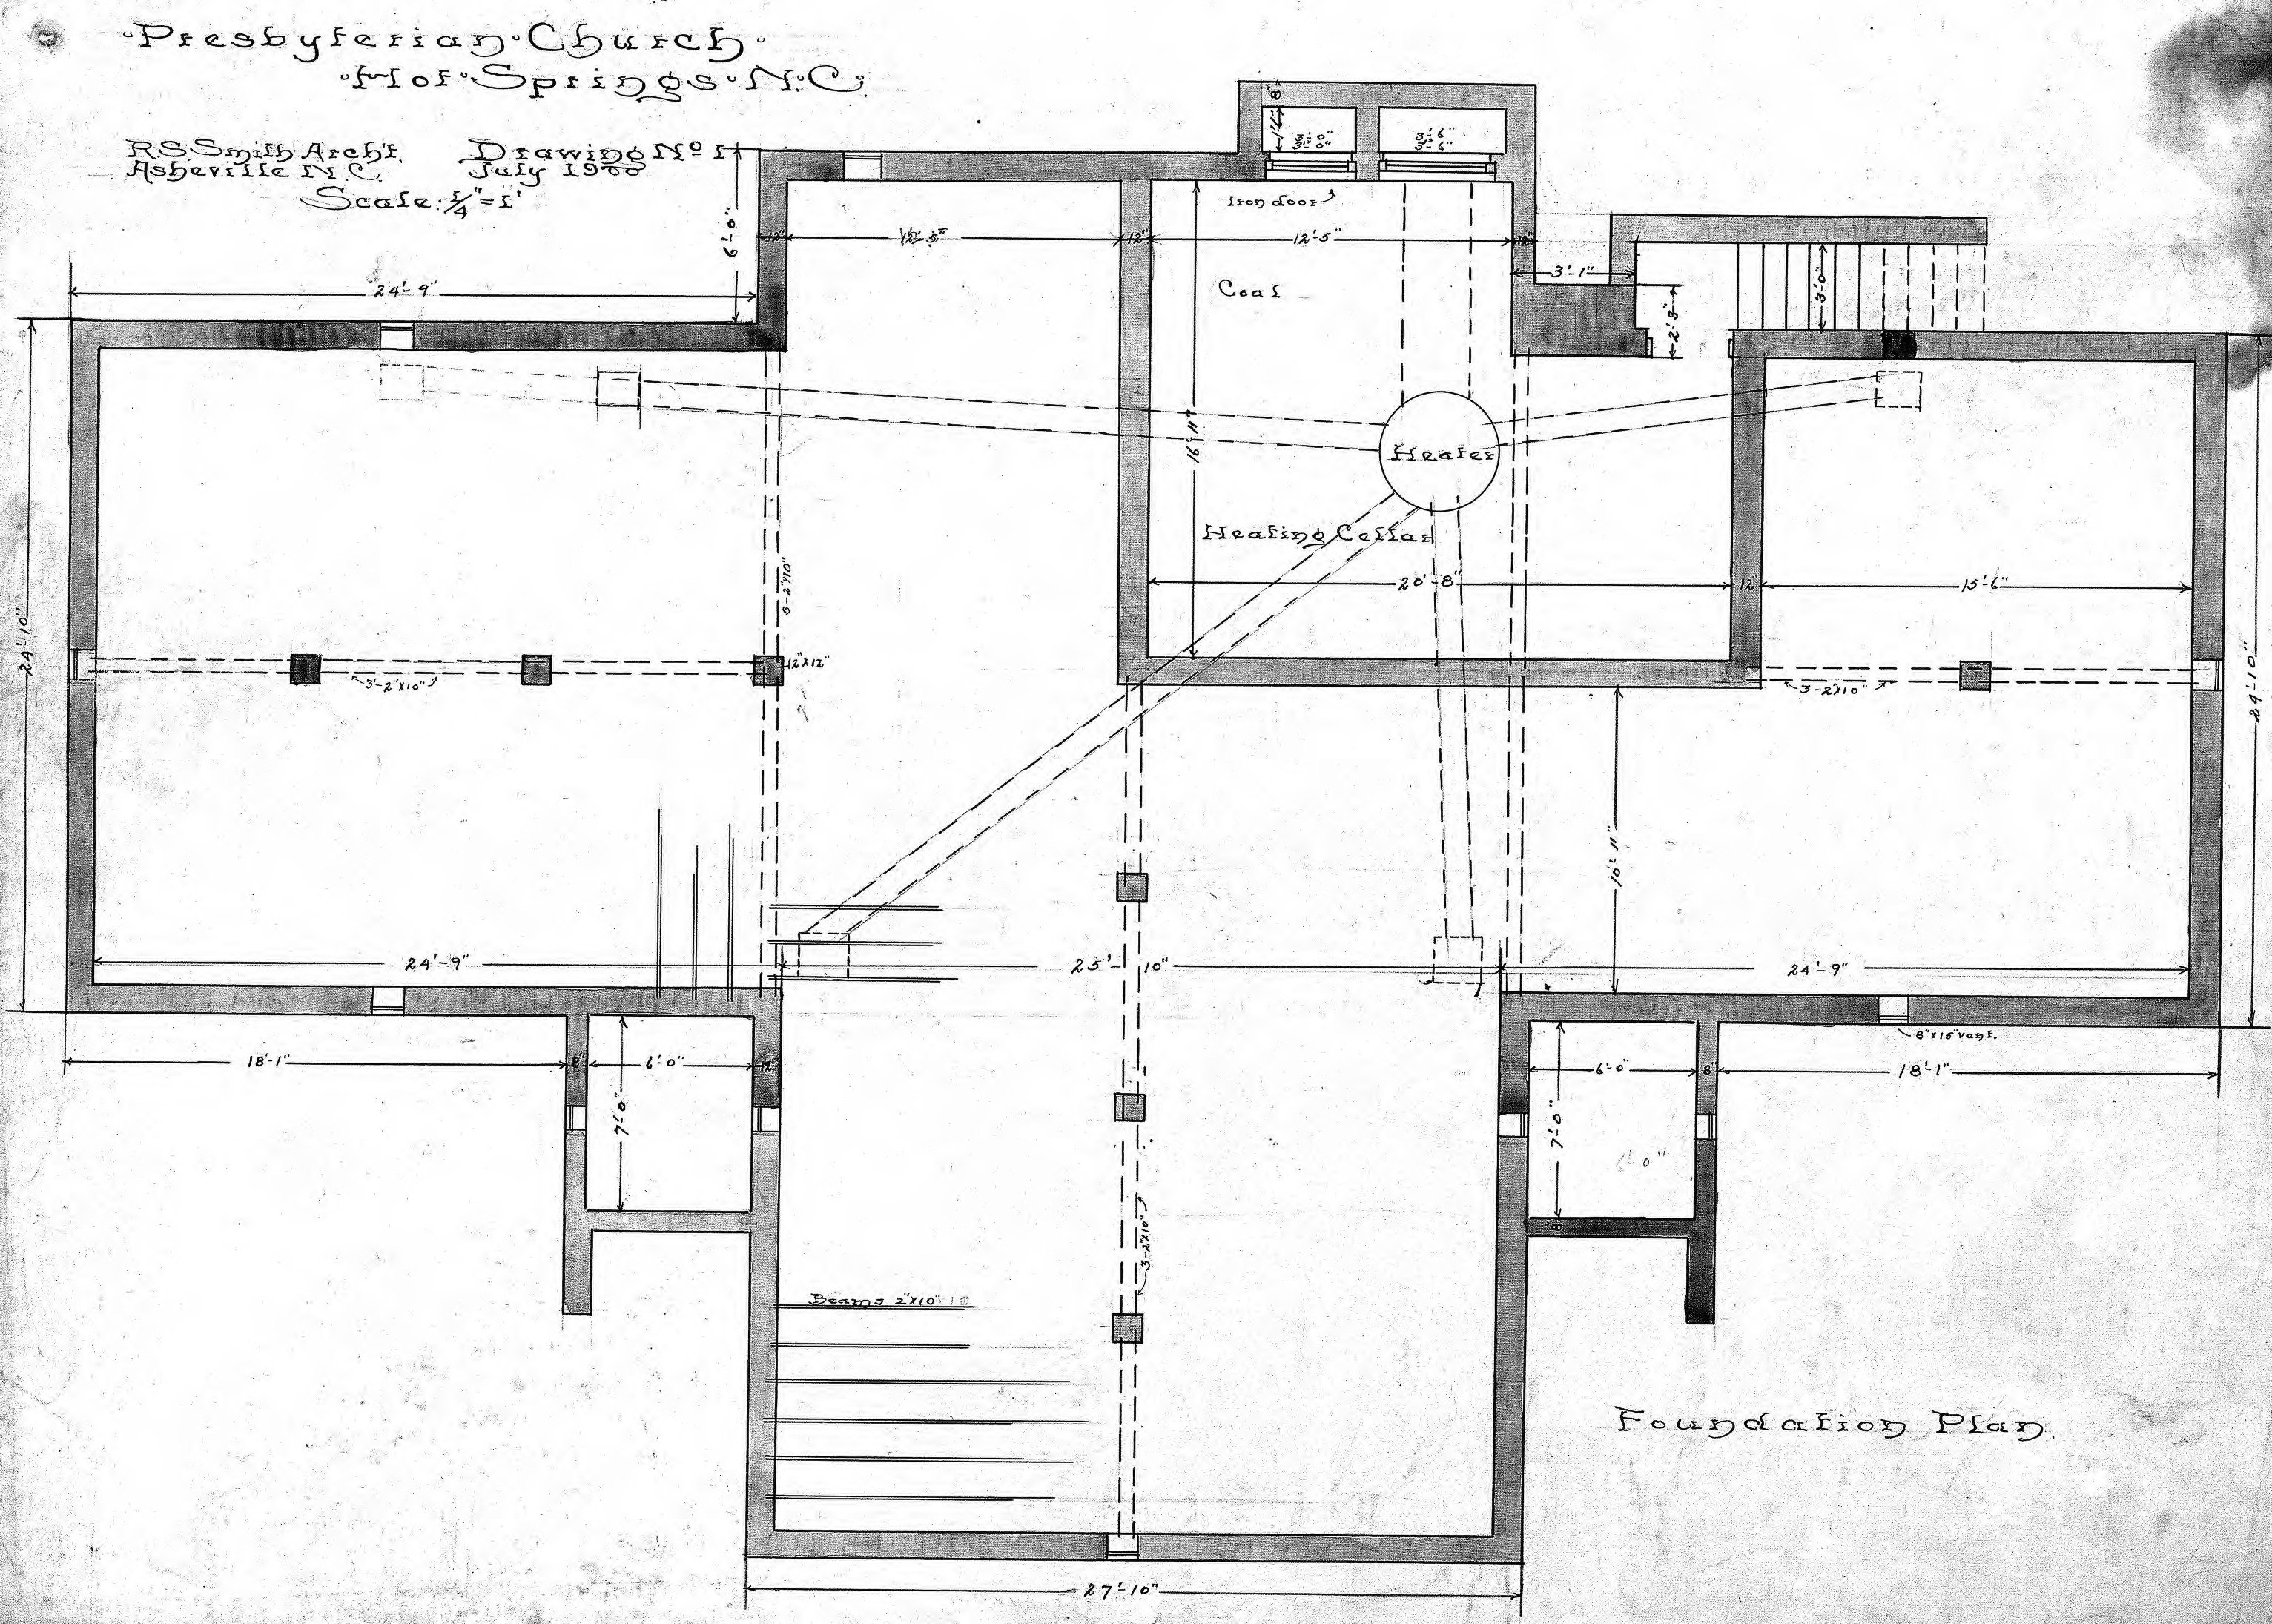 foundation plan drawing